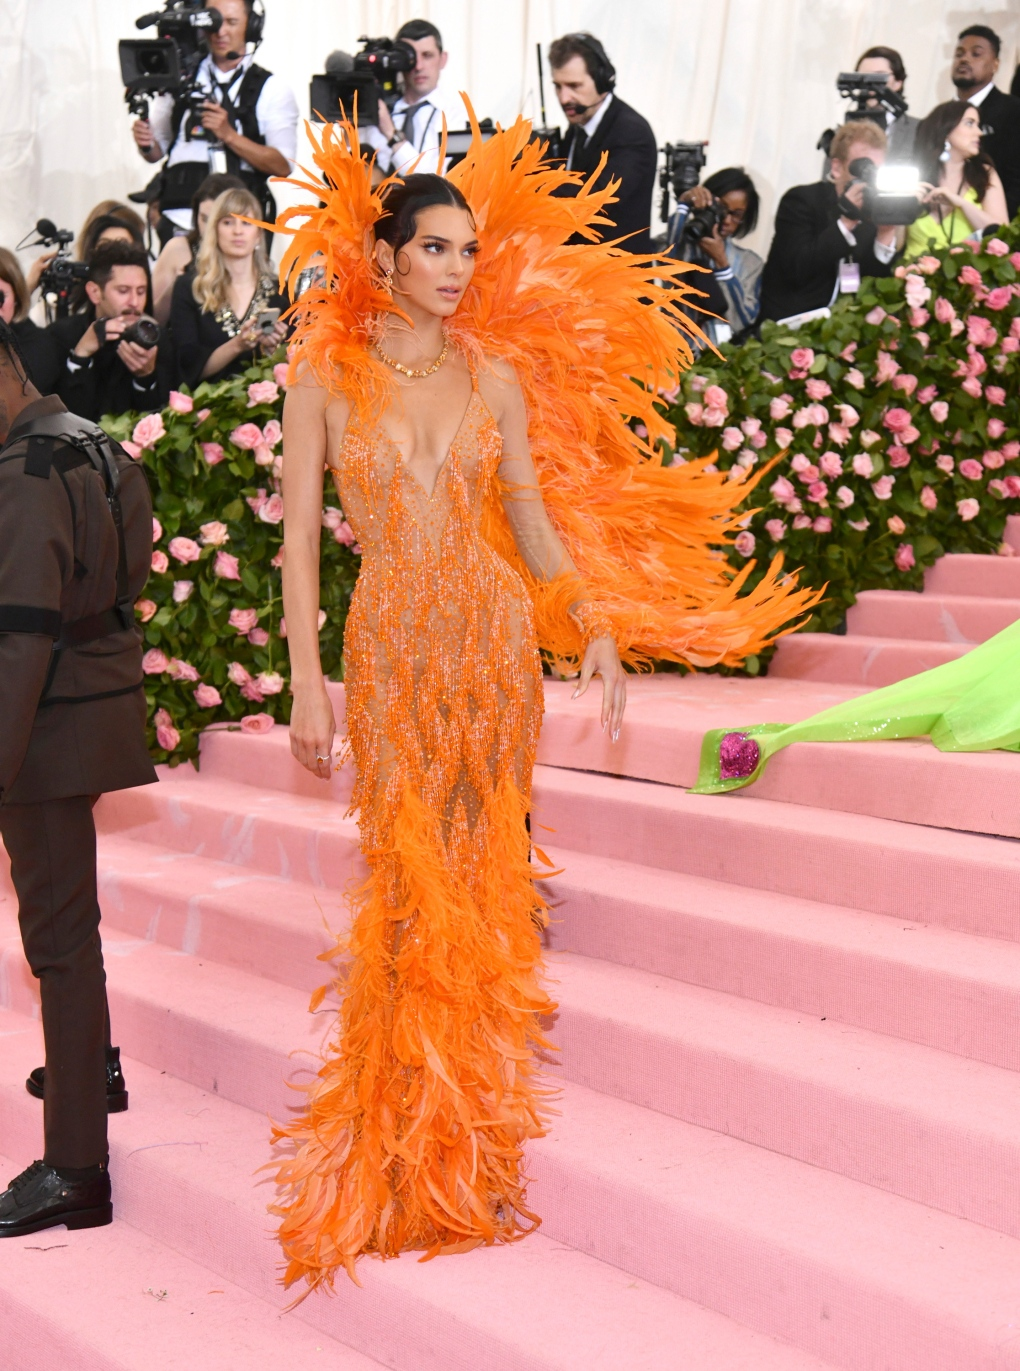 Celebs try to out-camp each other at wild Met Gala | Entertainment